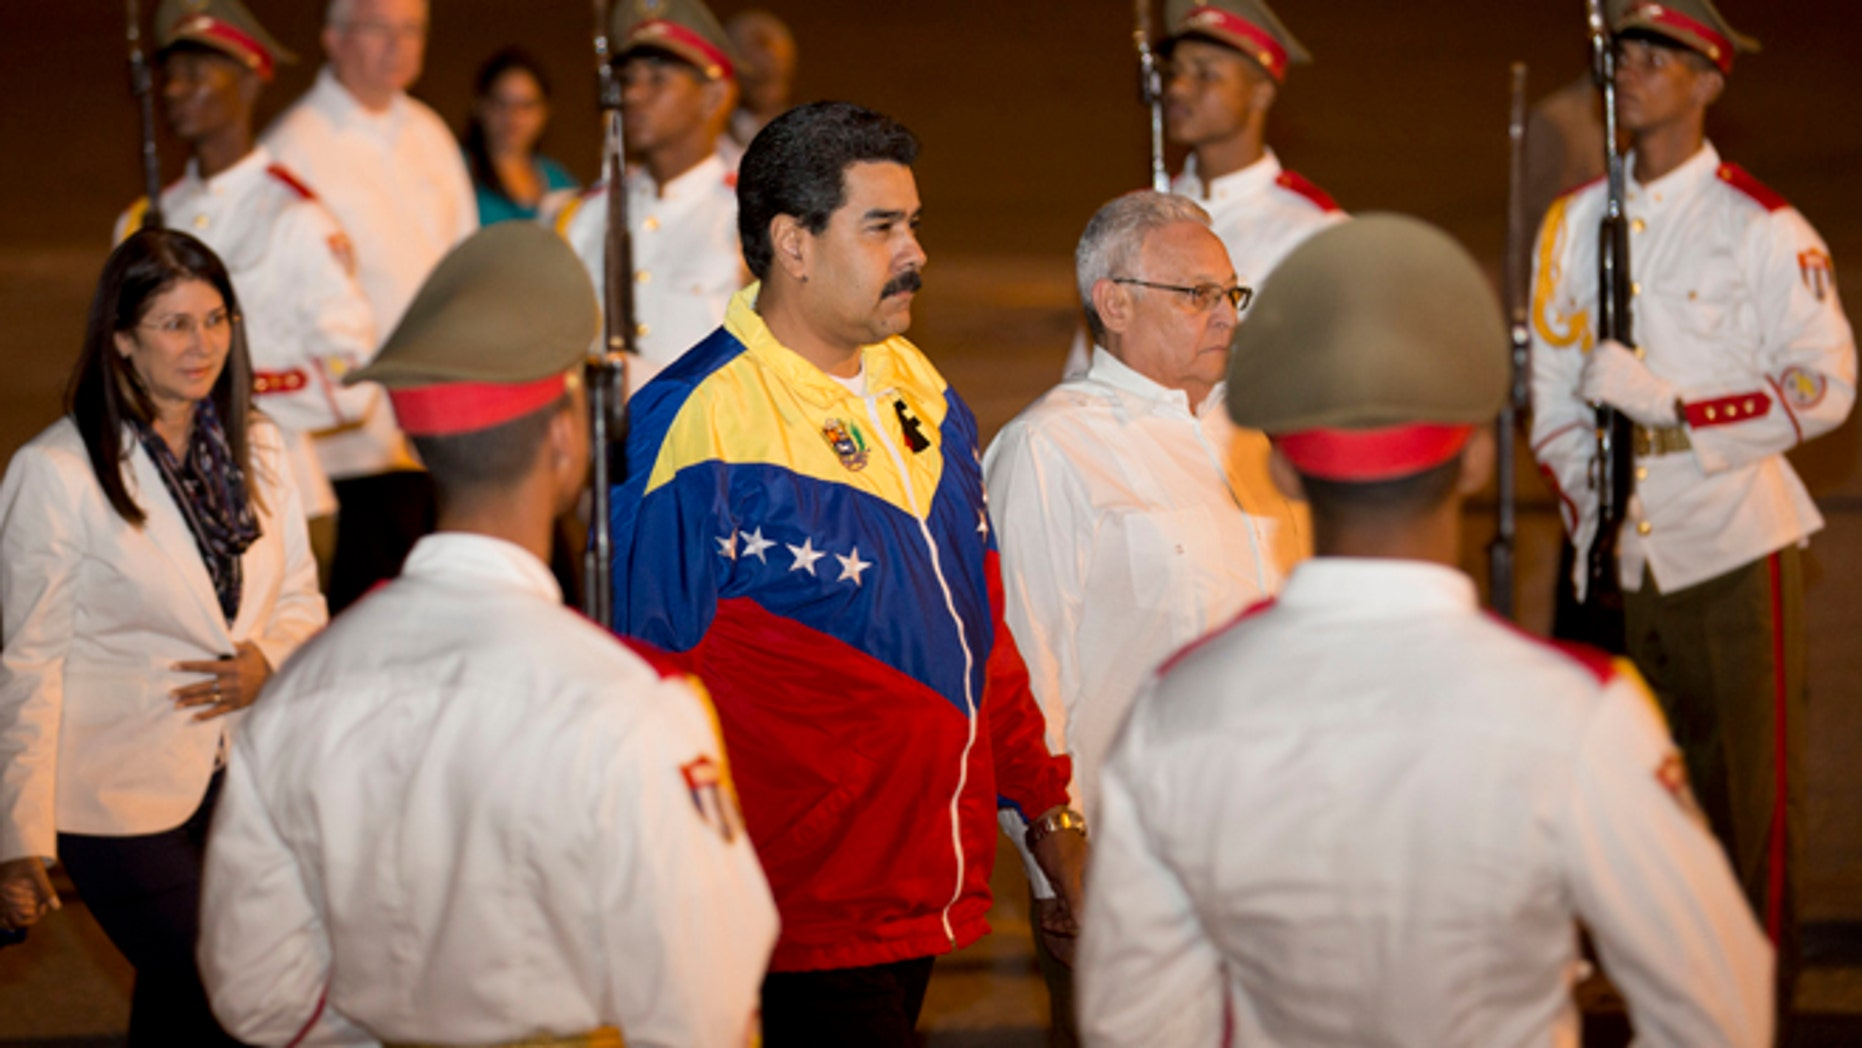 Venezuela's President Nicolas Maduro, center, arrives at the Jose Marti International airport in Havana, Cuba, Sunday, Jan. 26, 2014. Leaders from Latin America and the Caribbean are arriving in Havana this week to participate in the Community of Latin American and Caribbean States, or CELAC summit. Lower-level officials began meeting over the weekend and foreign ministers are taking the stage Monday. The formal meetings of heads of state begin Tuesday. (AP Photo/Ramon Espinosa)